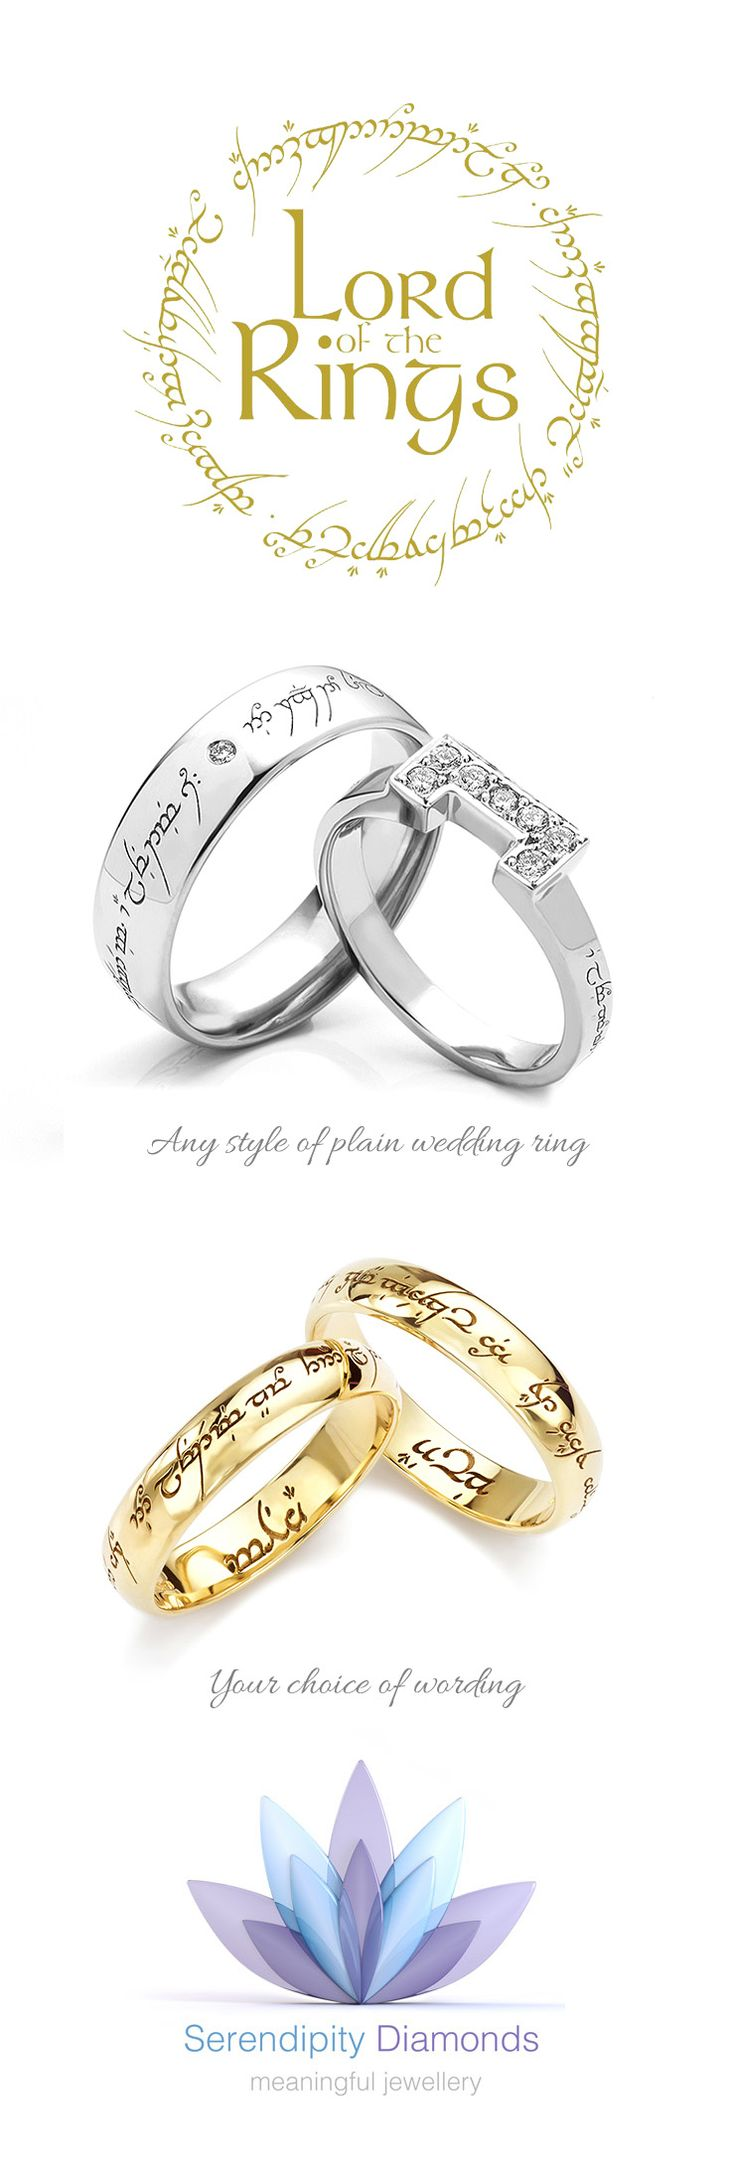 the meaningful in wedding engraving out cursive your choose most blog is venus ring popular font tears which depending choice of variety from collection on bands a poesie engagement rings you may sg